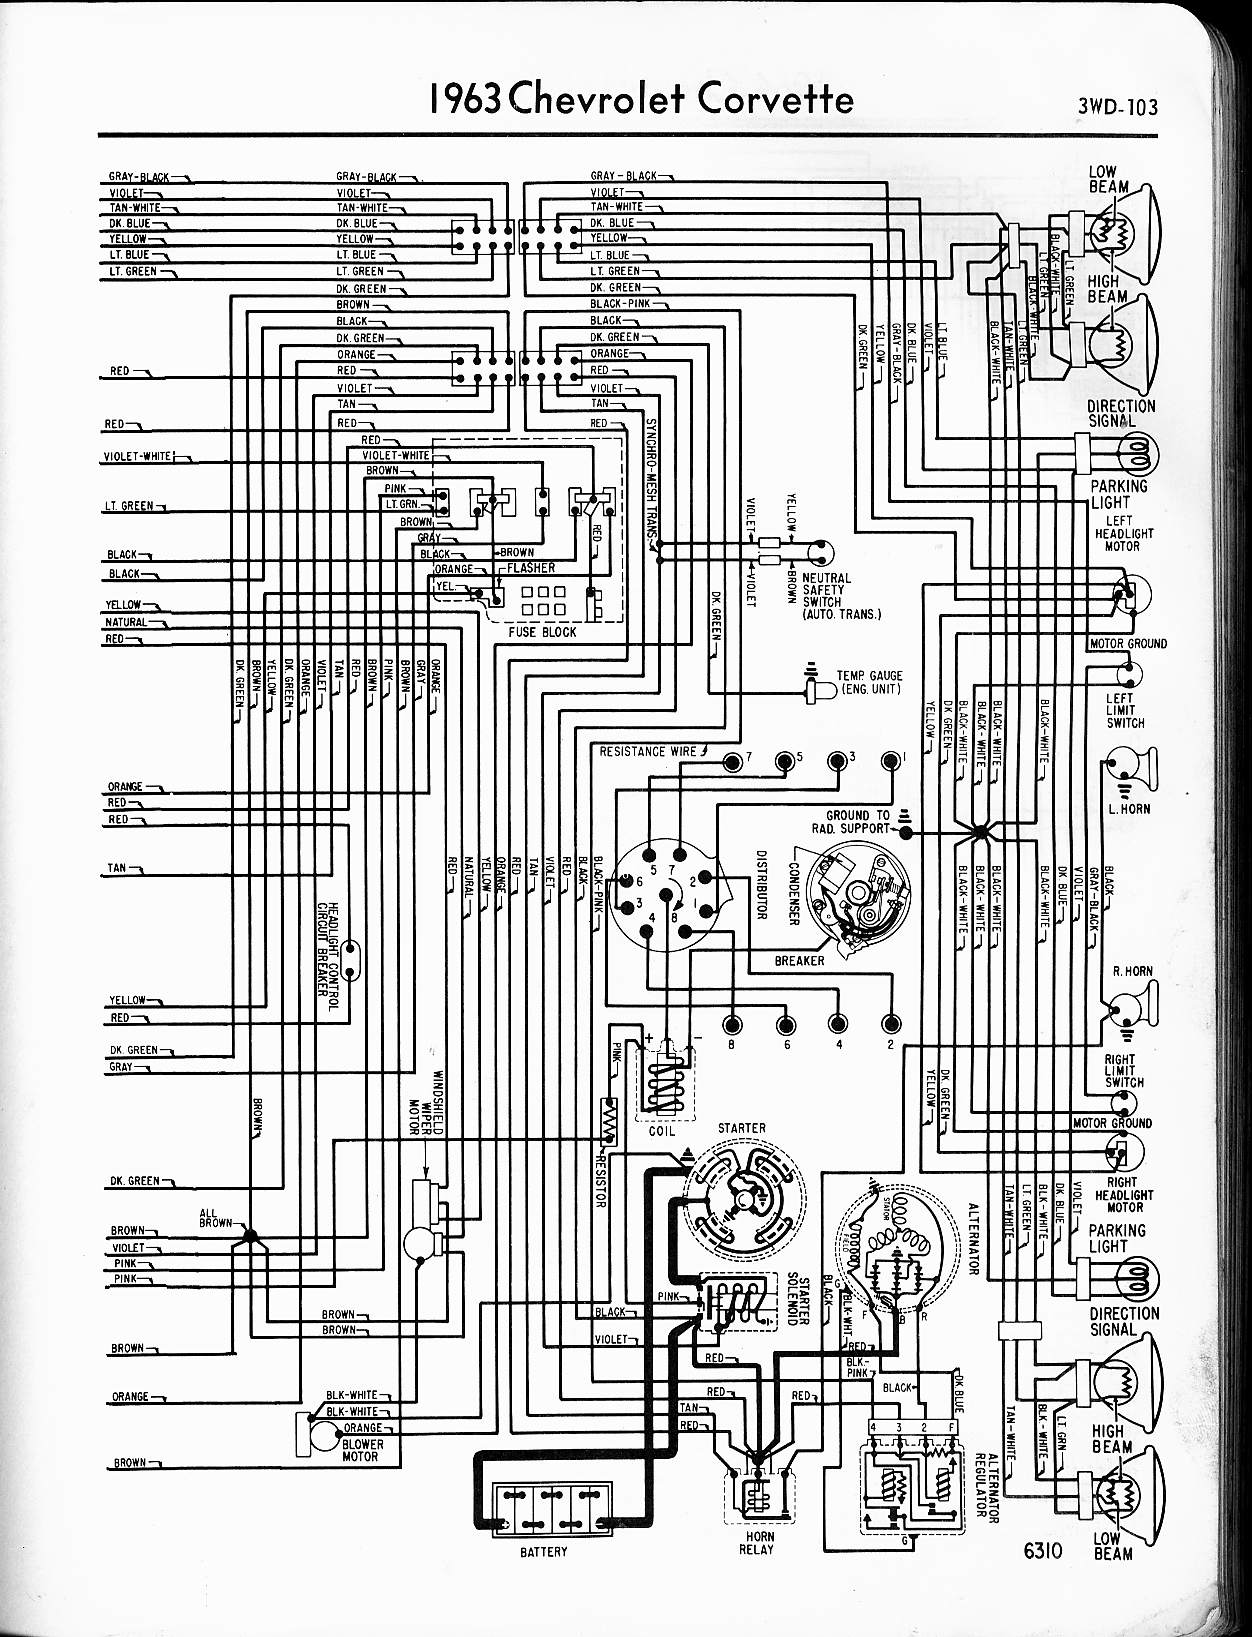 MWireChev63_3WD 103 57 65 chevy wiring diagrams 66 Corvette at panicattacktreatment.co